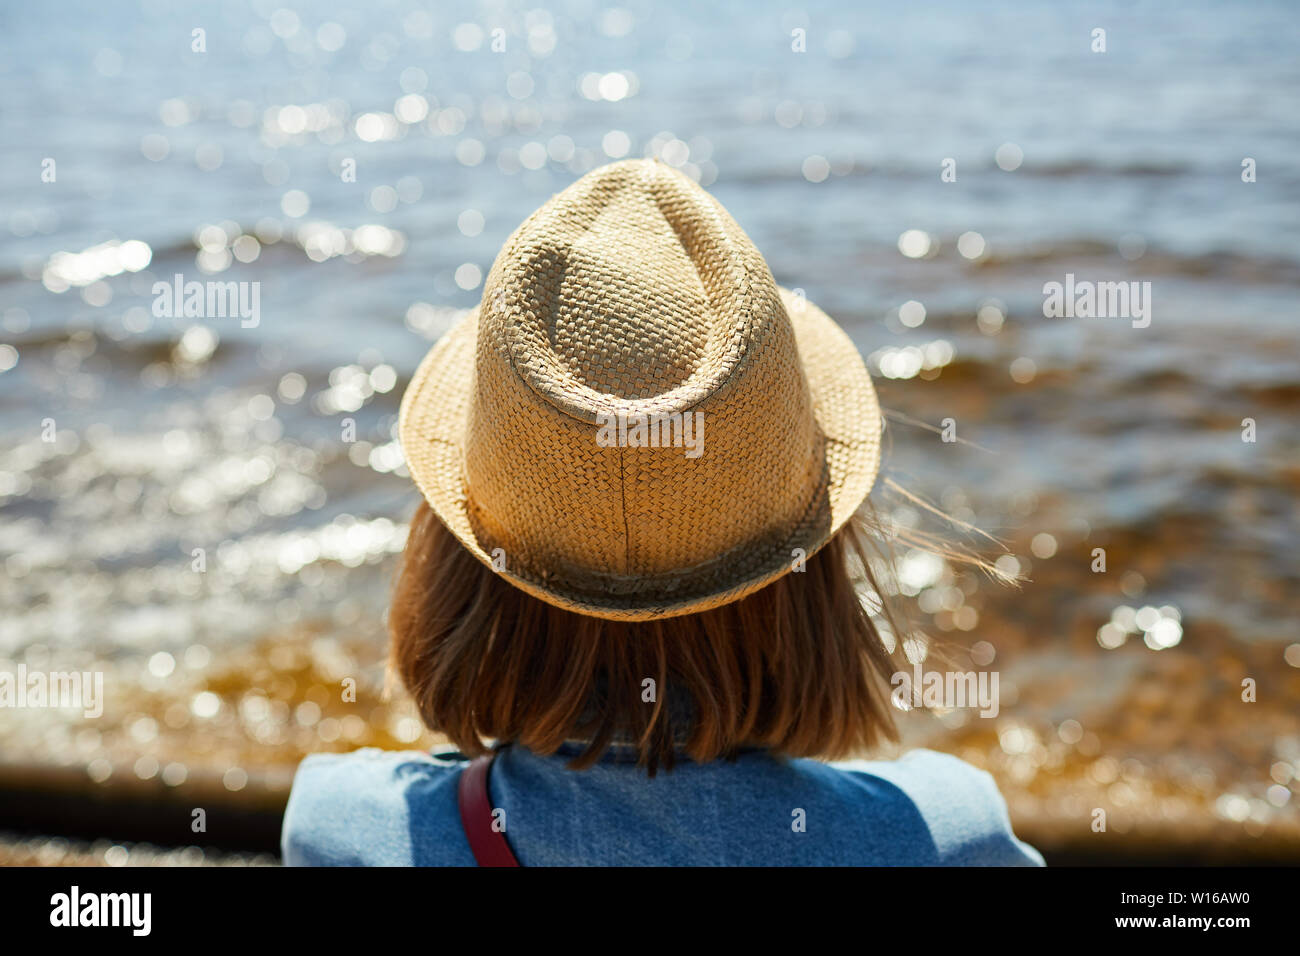 Back view portrait of young woman wearing straw hat looking out at sea in Summer, copy space Stock Photo